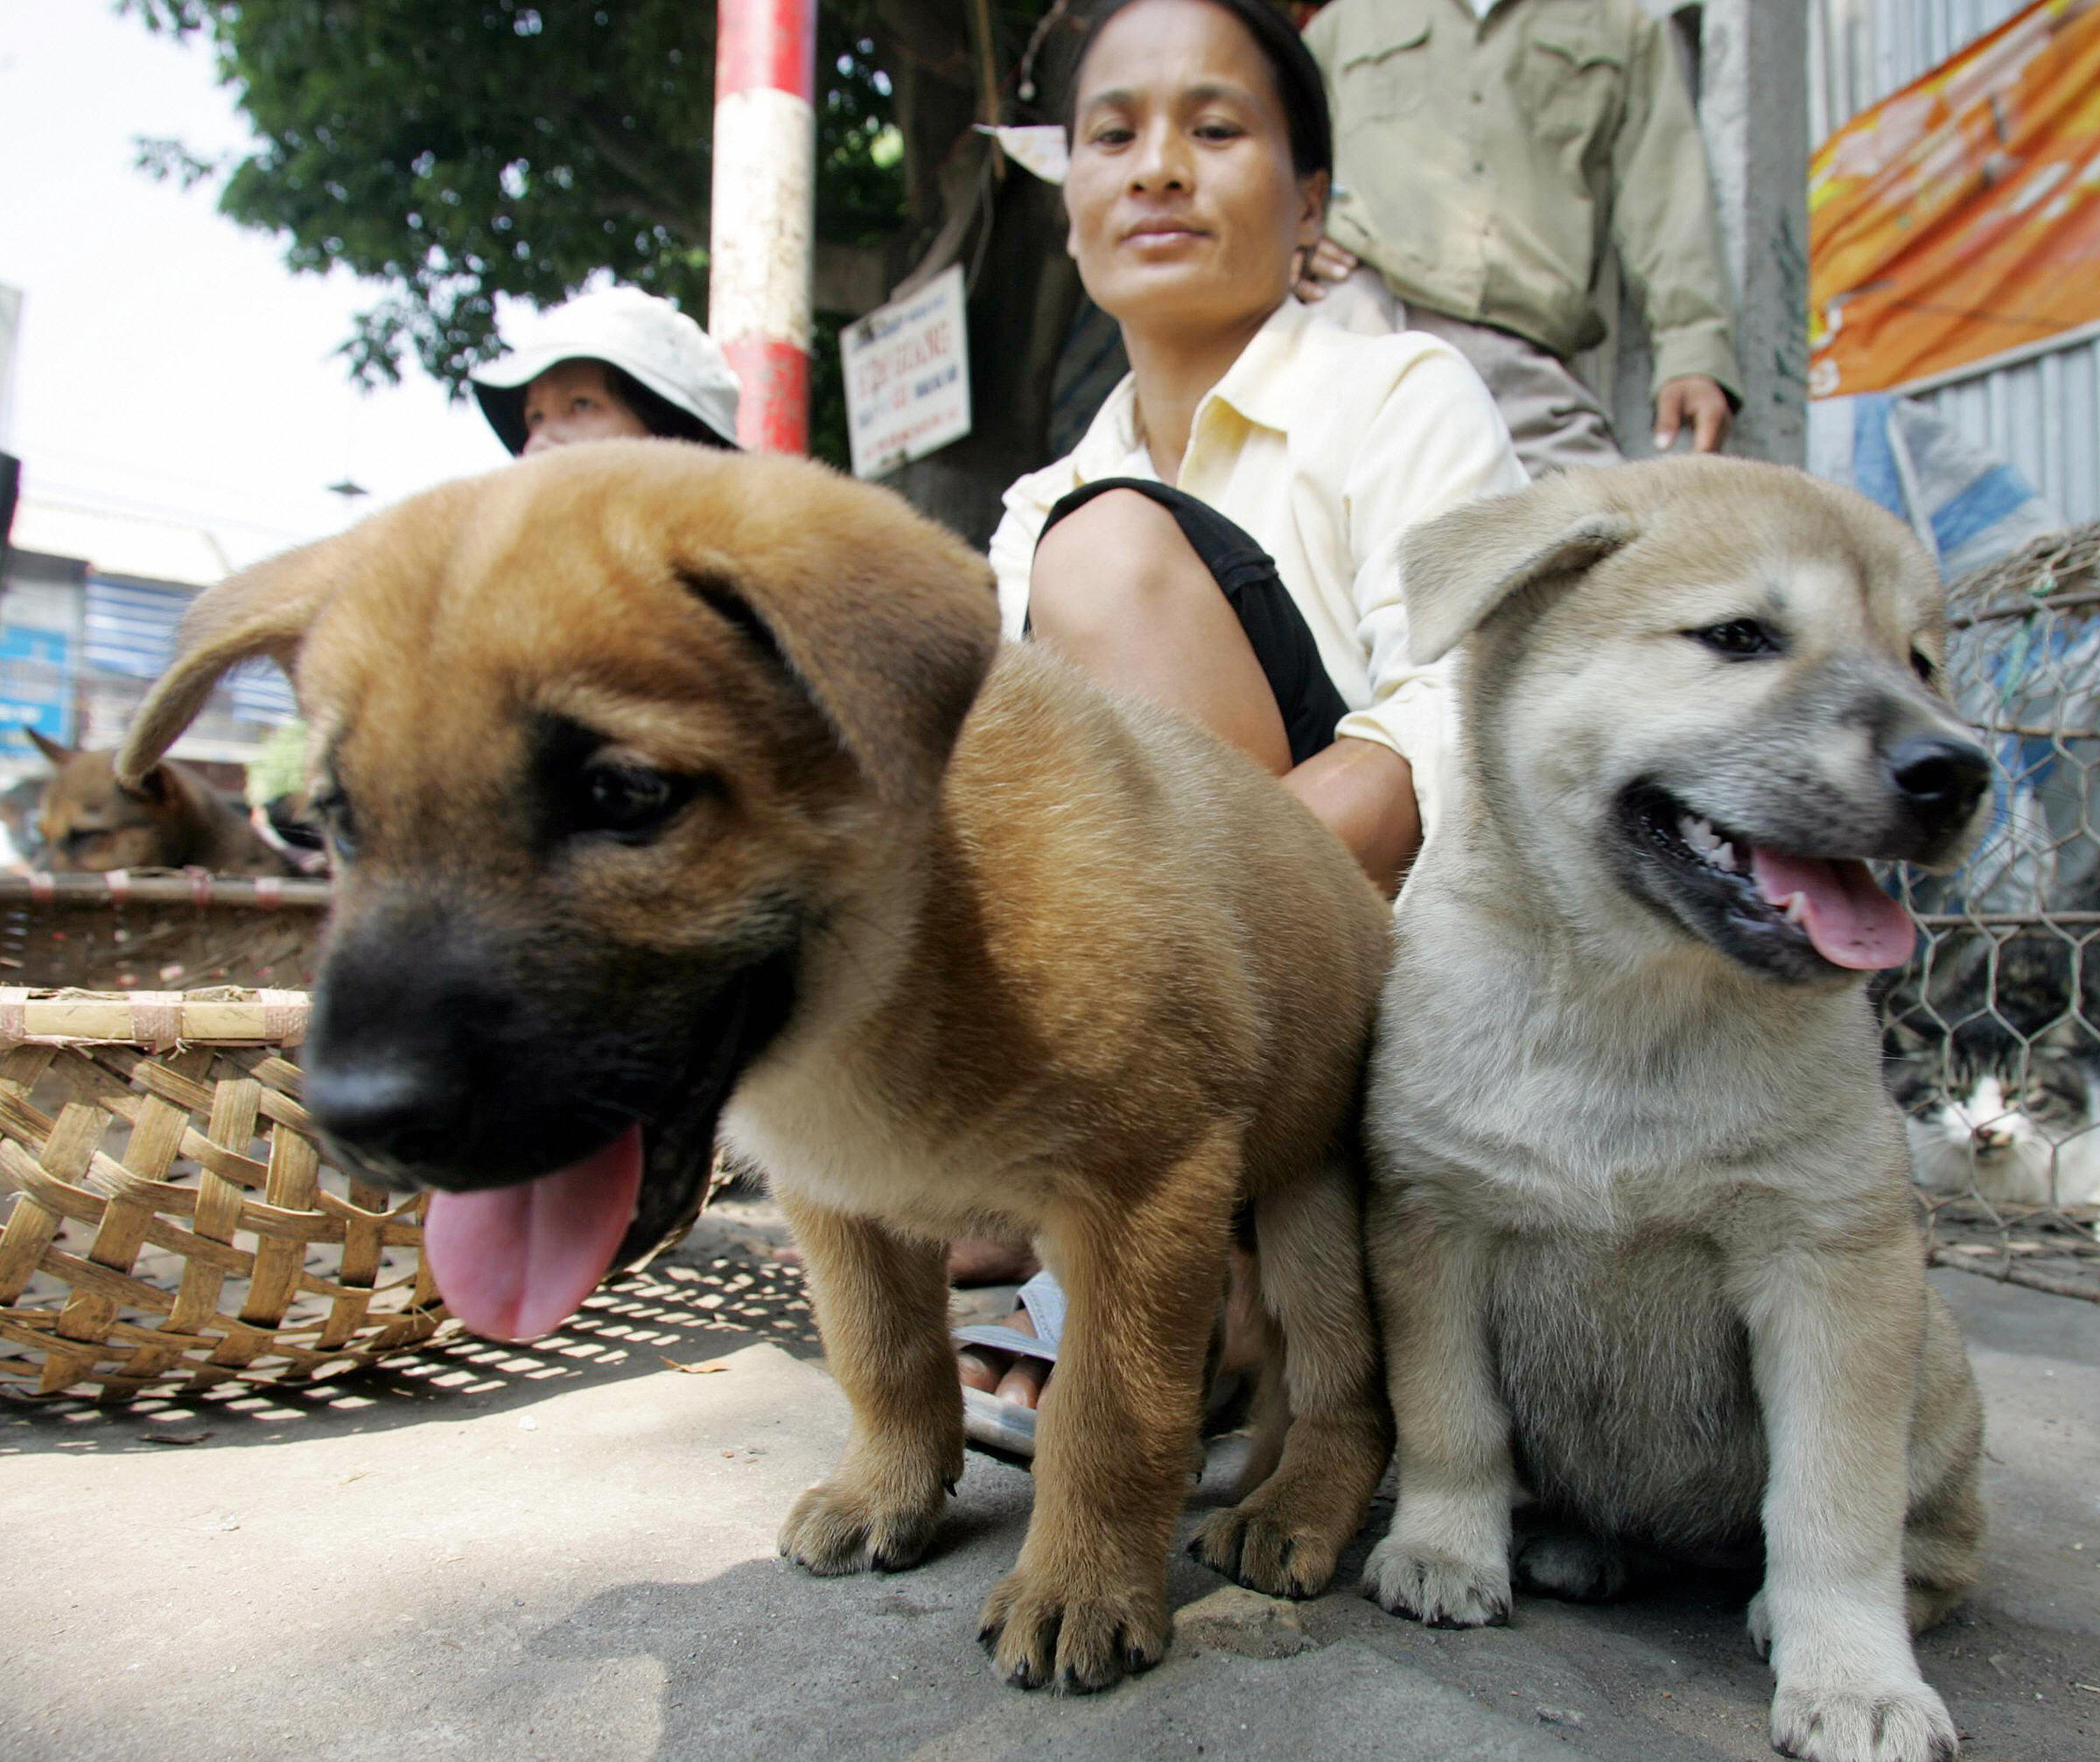 Two women sit selling young dogs at a road side